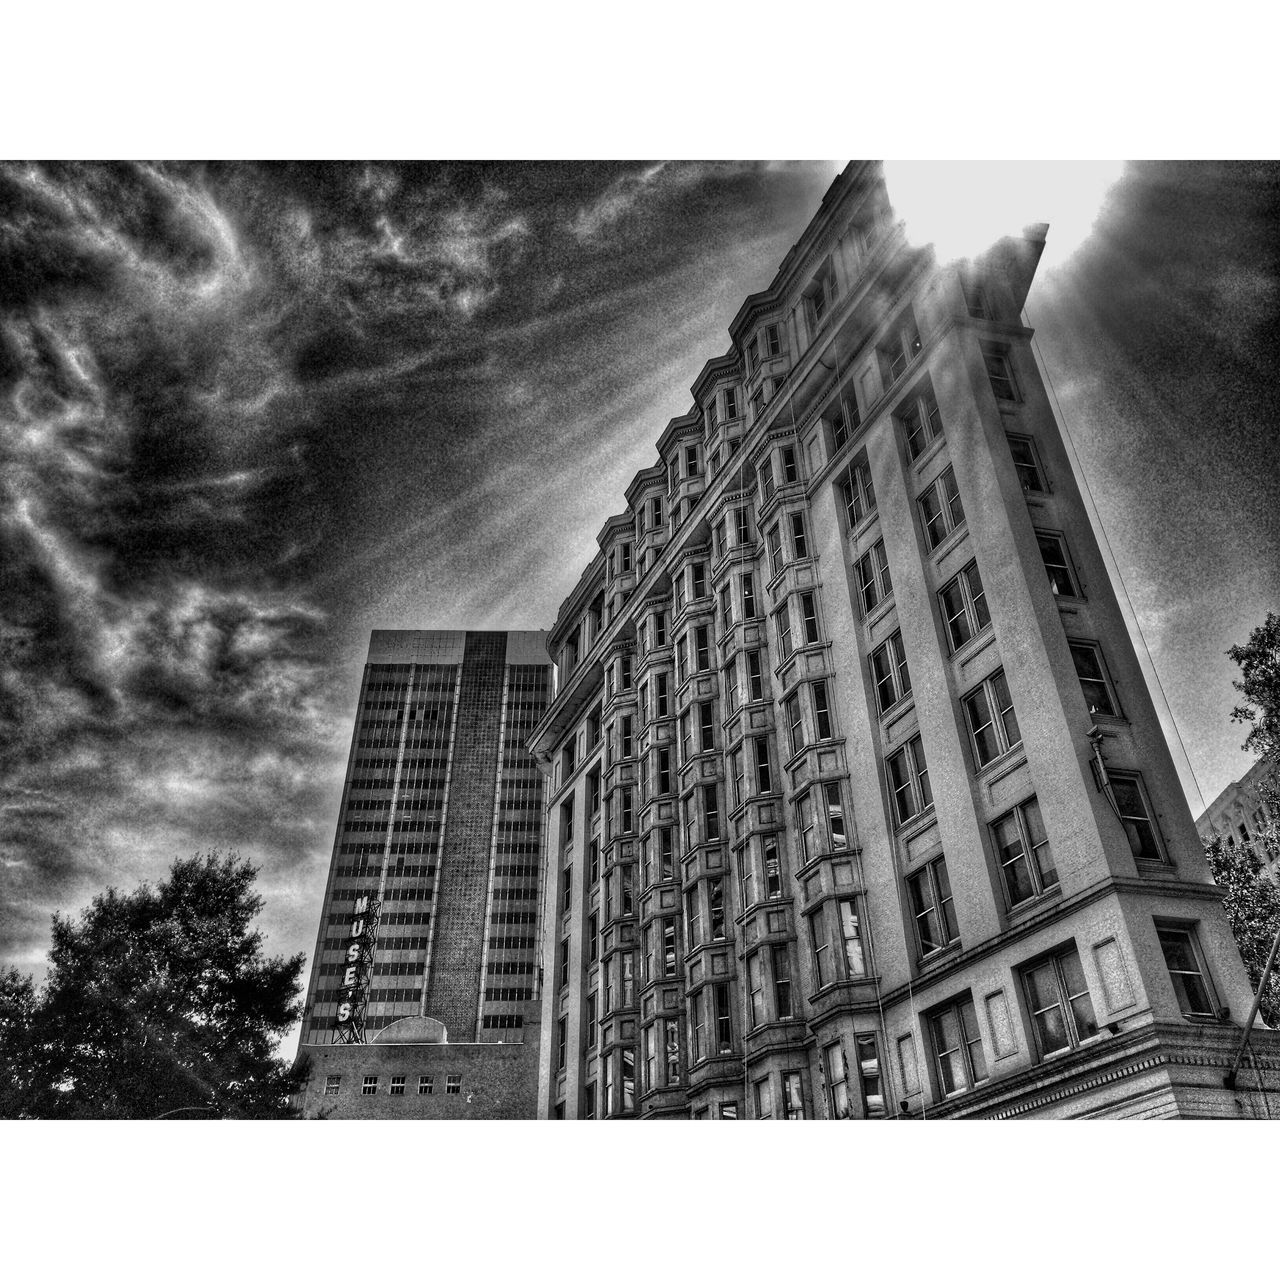 architecture, building exterior, sky, low angle view, city, outdoors, no people, day